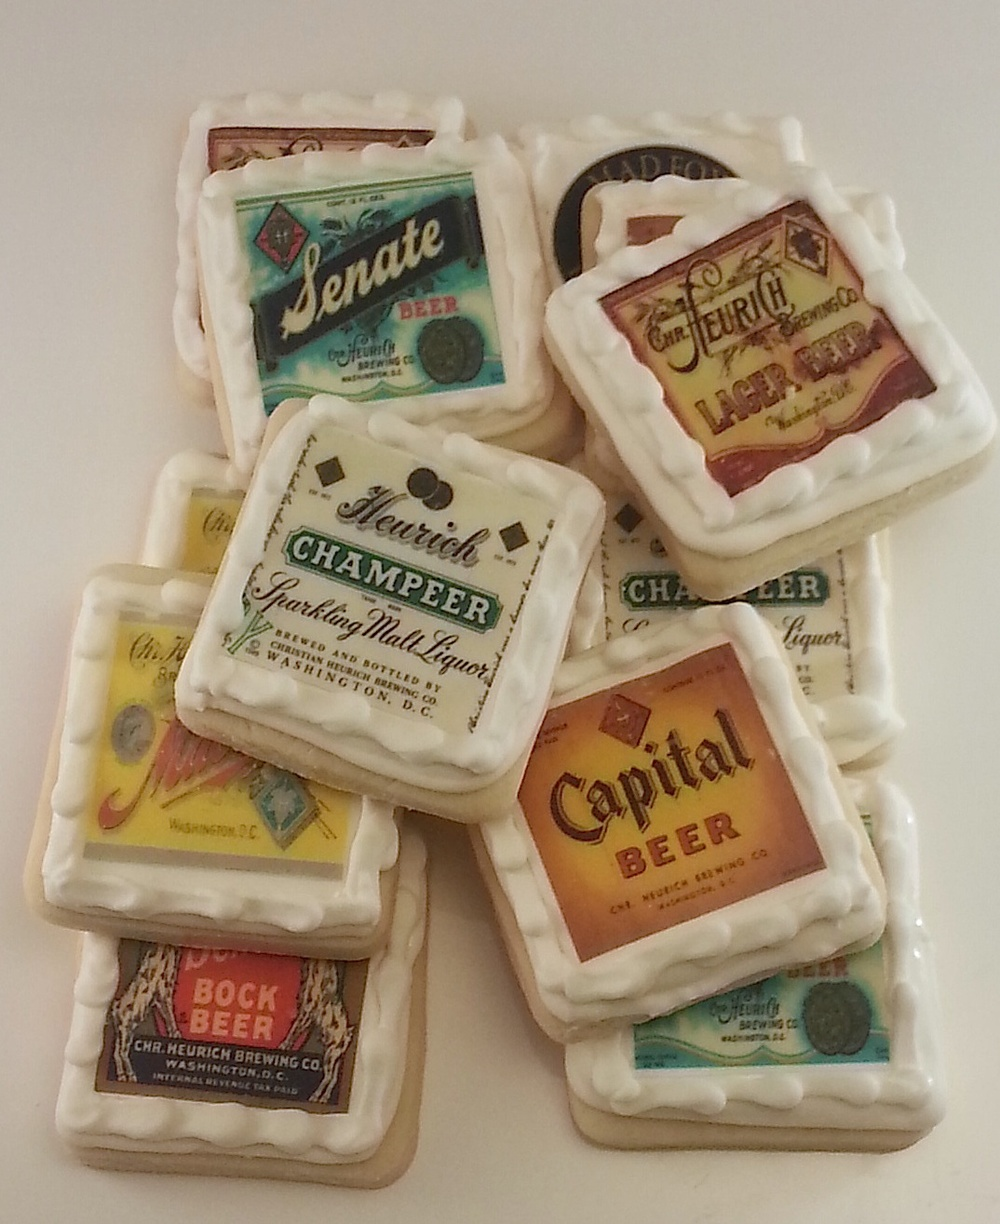 beer labels on cookies.jpg